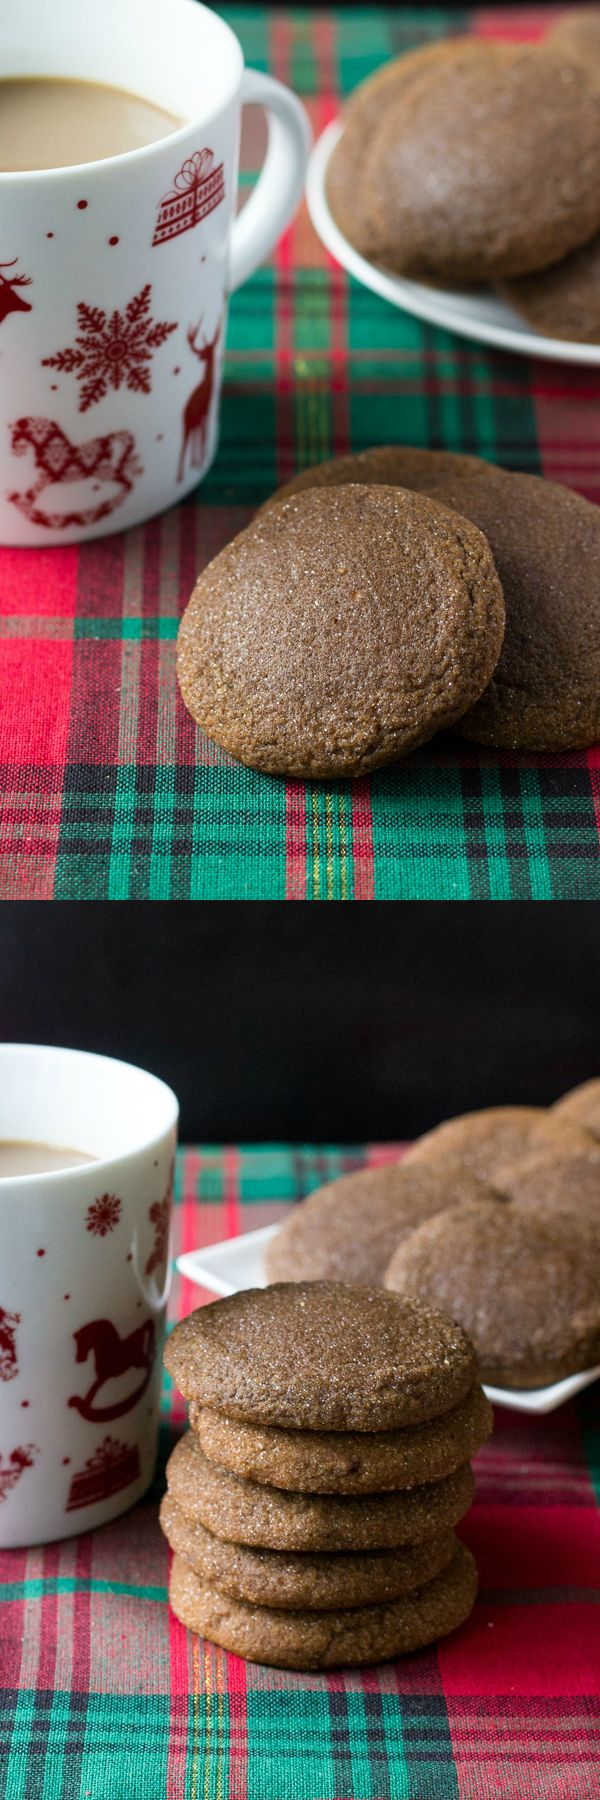 The softest, chewiest ginger molasses cookies. With brown sugar, molasses & lots of spices - this easy recipe is perfect for the holidays!